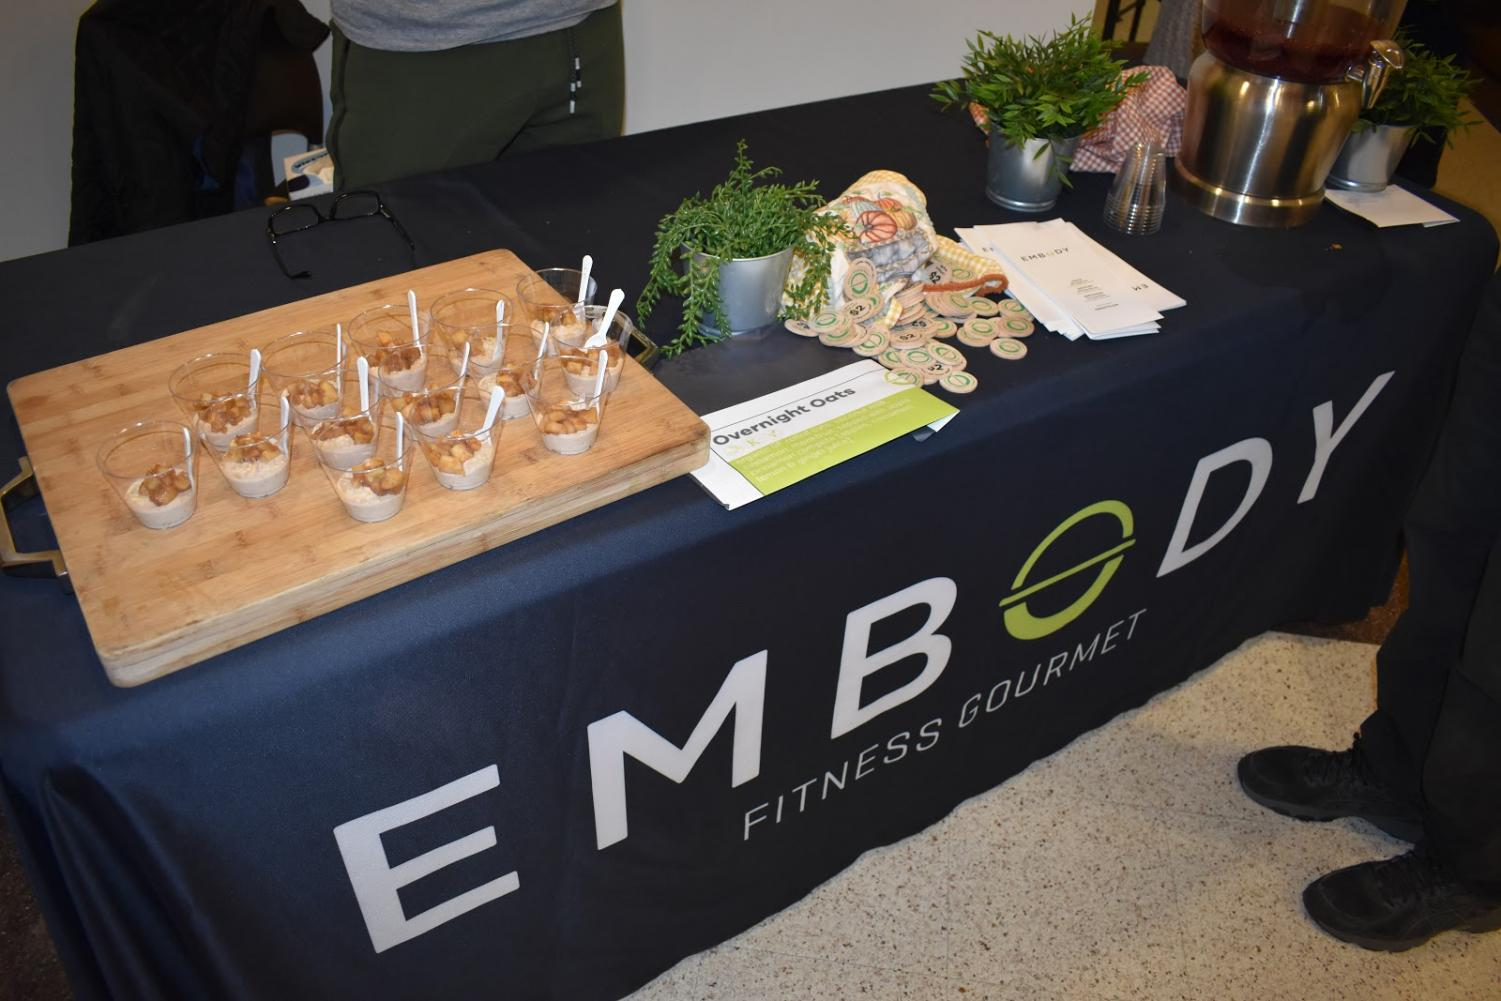 One of the booths at the event was Embody which served their overnight oats. The sampling included rolled oats soaked in coconut milk topped with apple cinnamon compote.